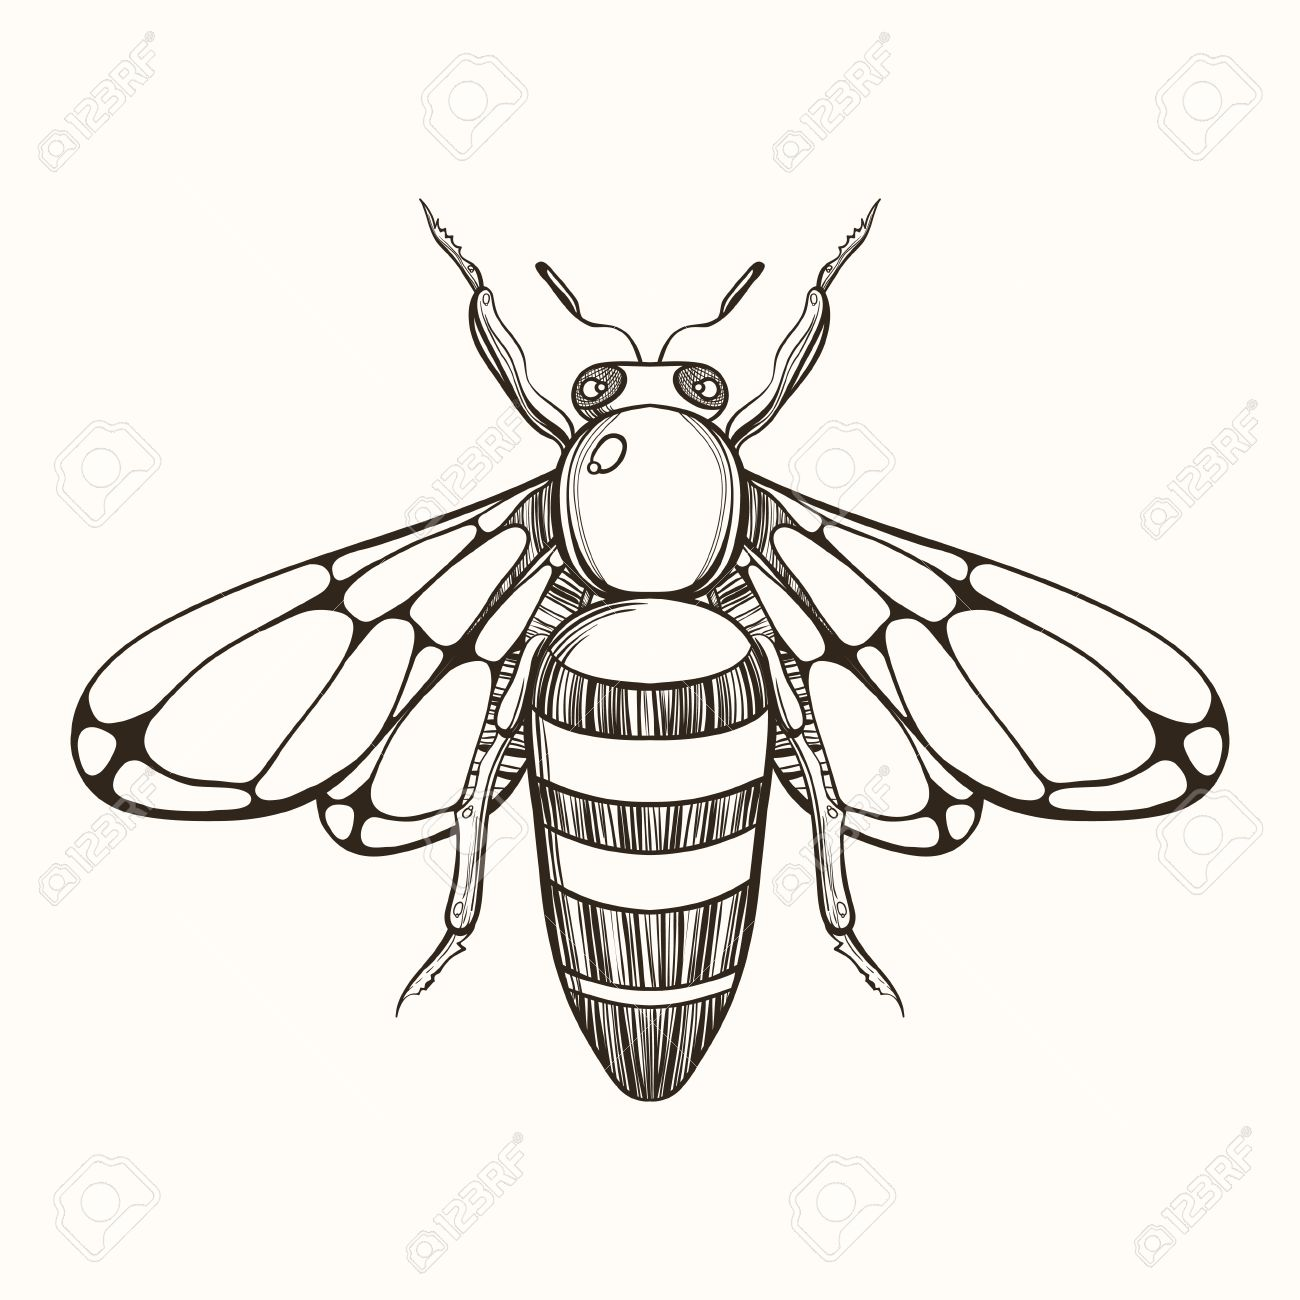 1300x1300 Hand Drawn Engraving Sketch Of Bee. Vector Illustration